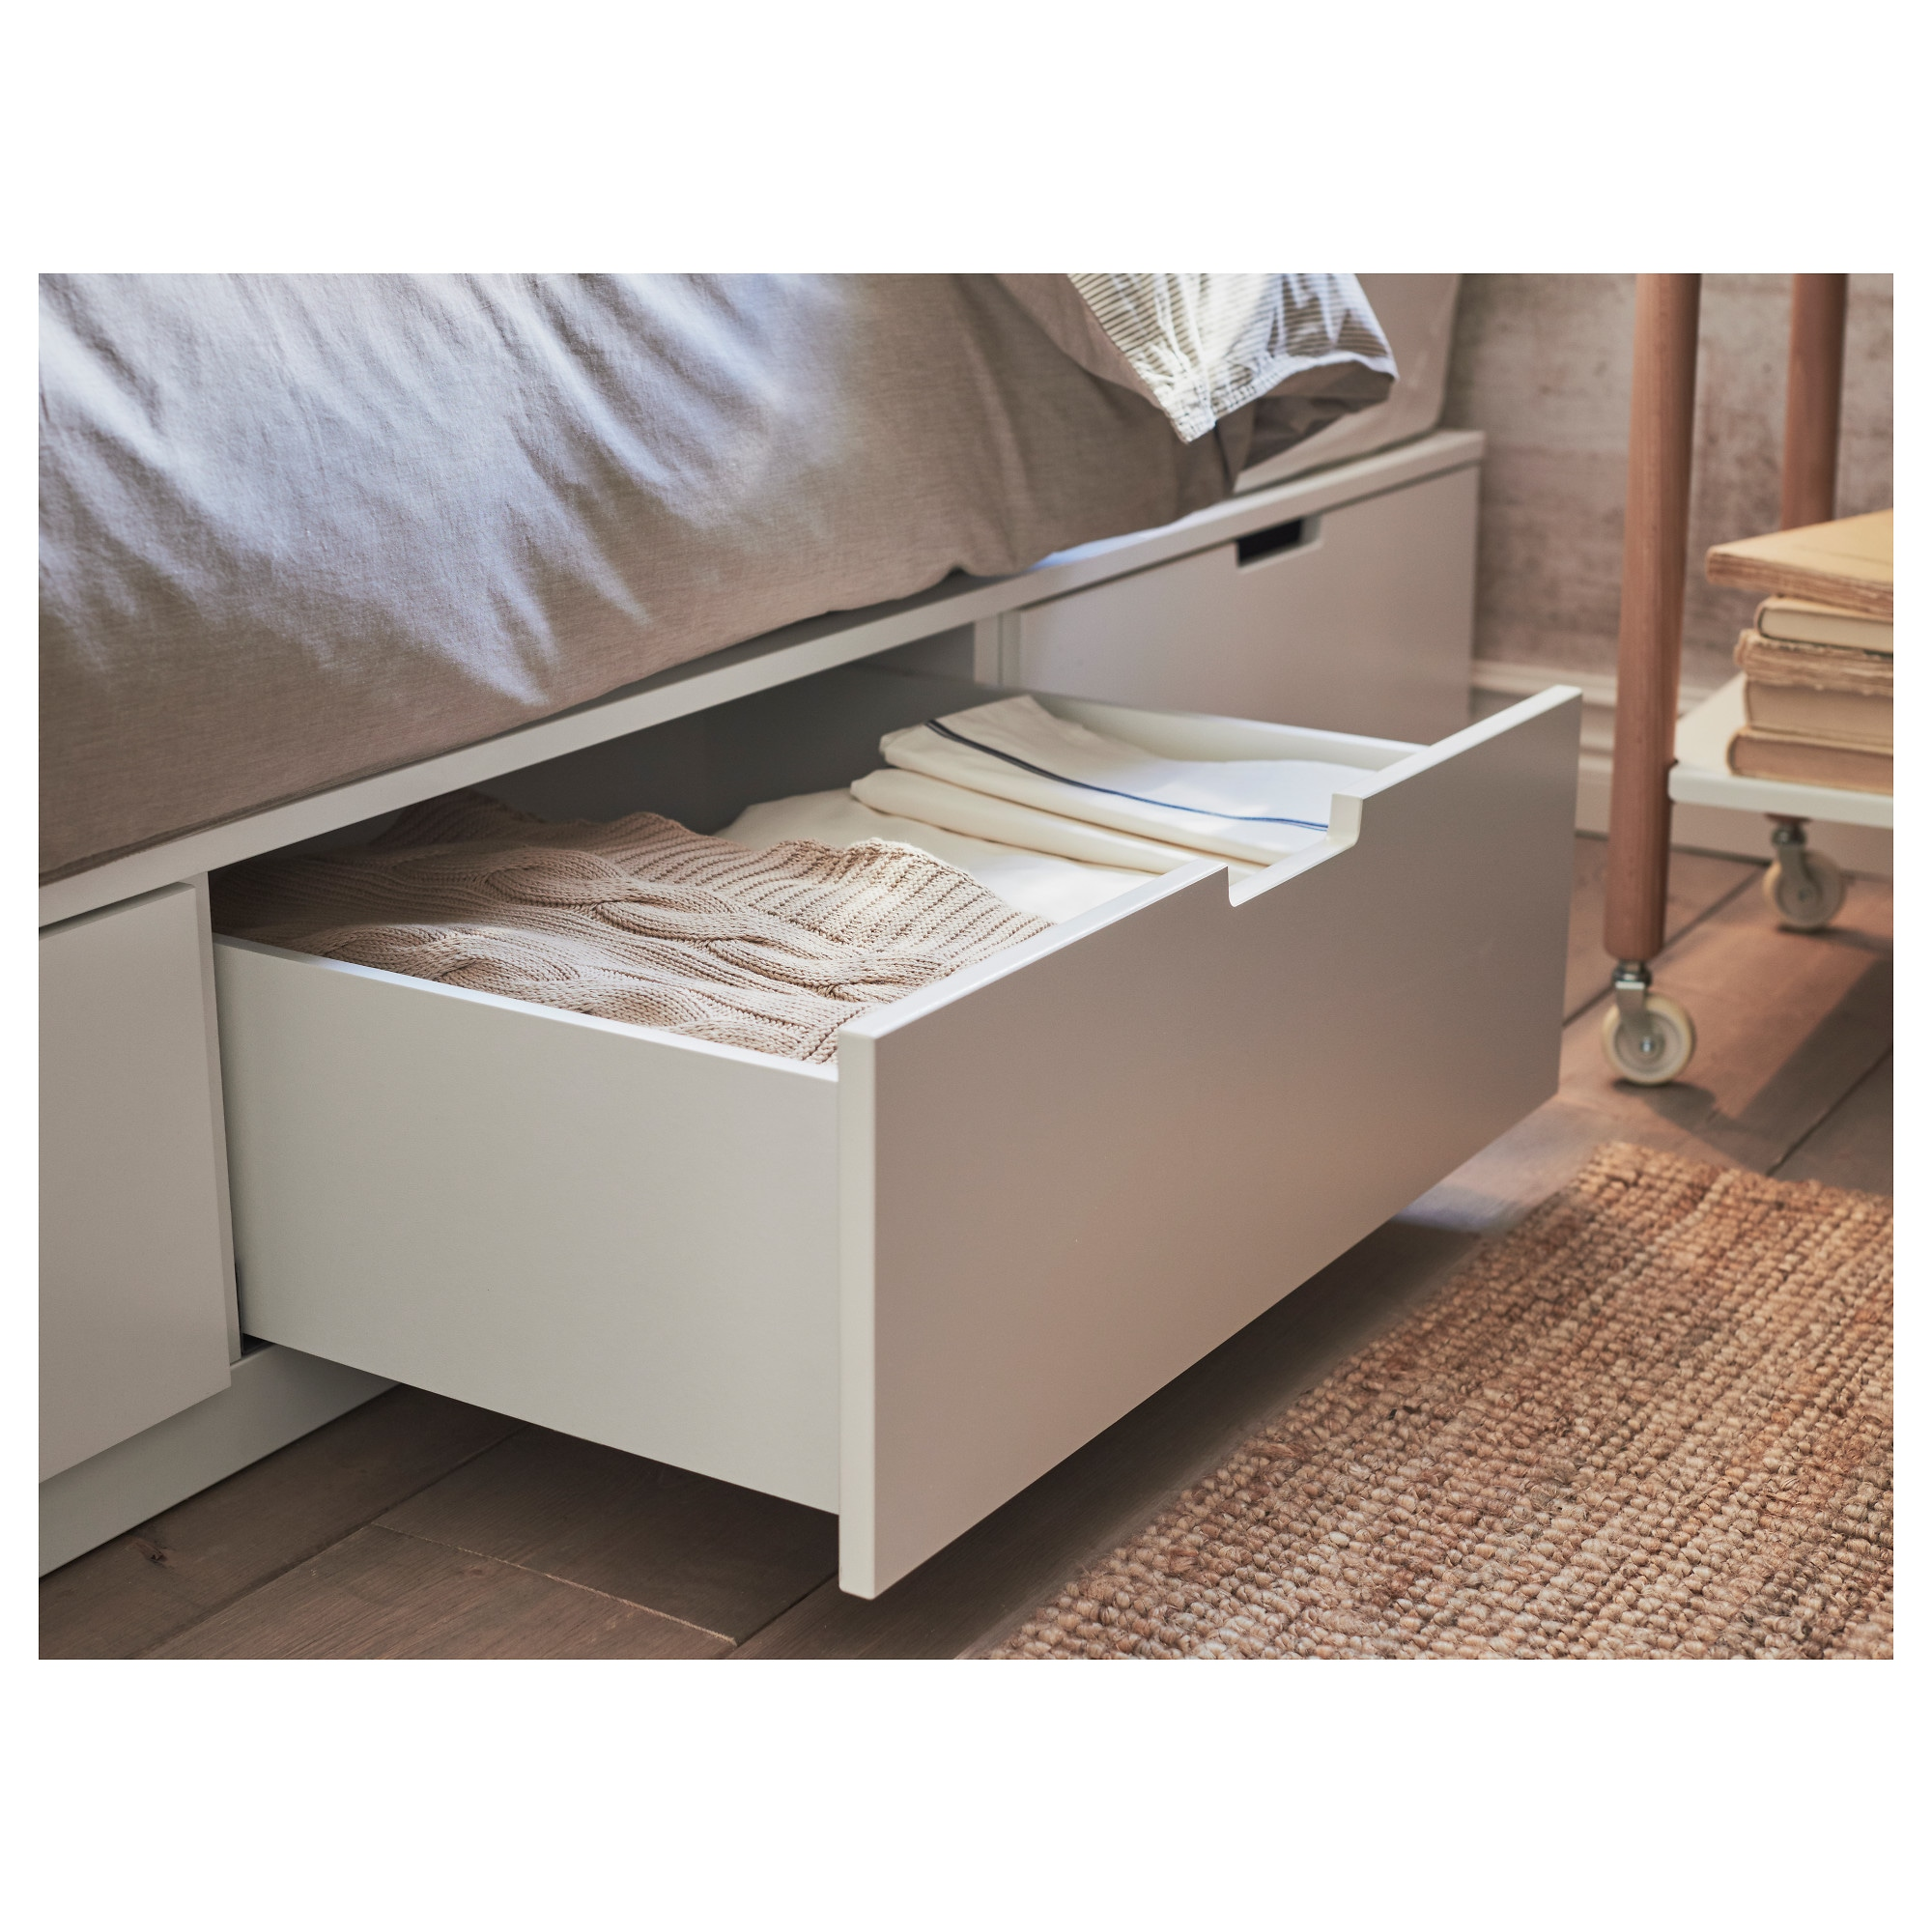 NORDLI Bed frame with storage - Queen - IKEA